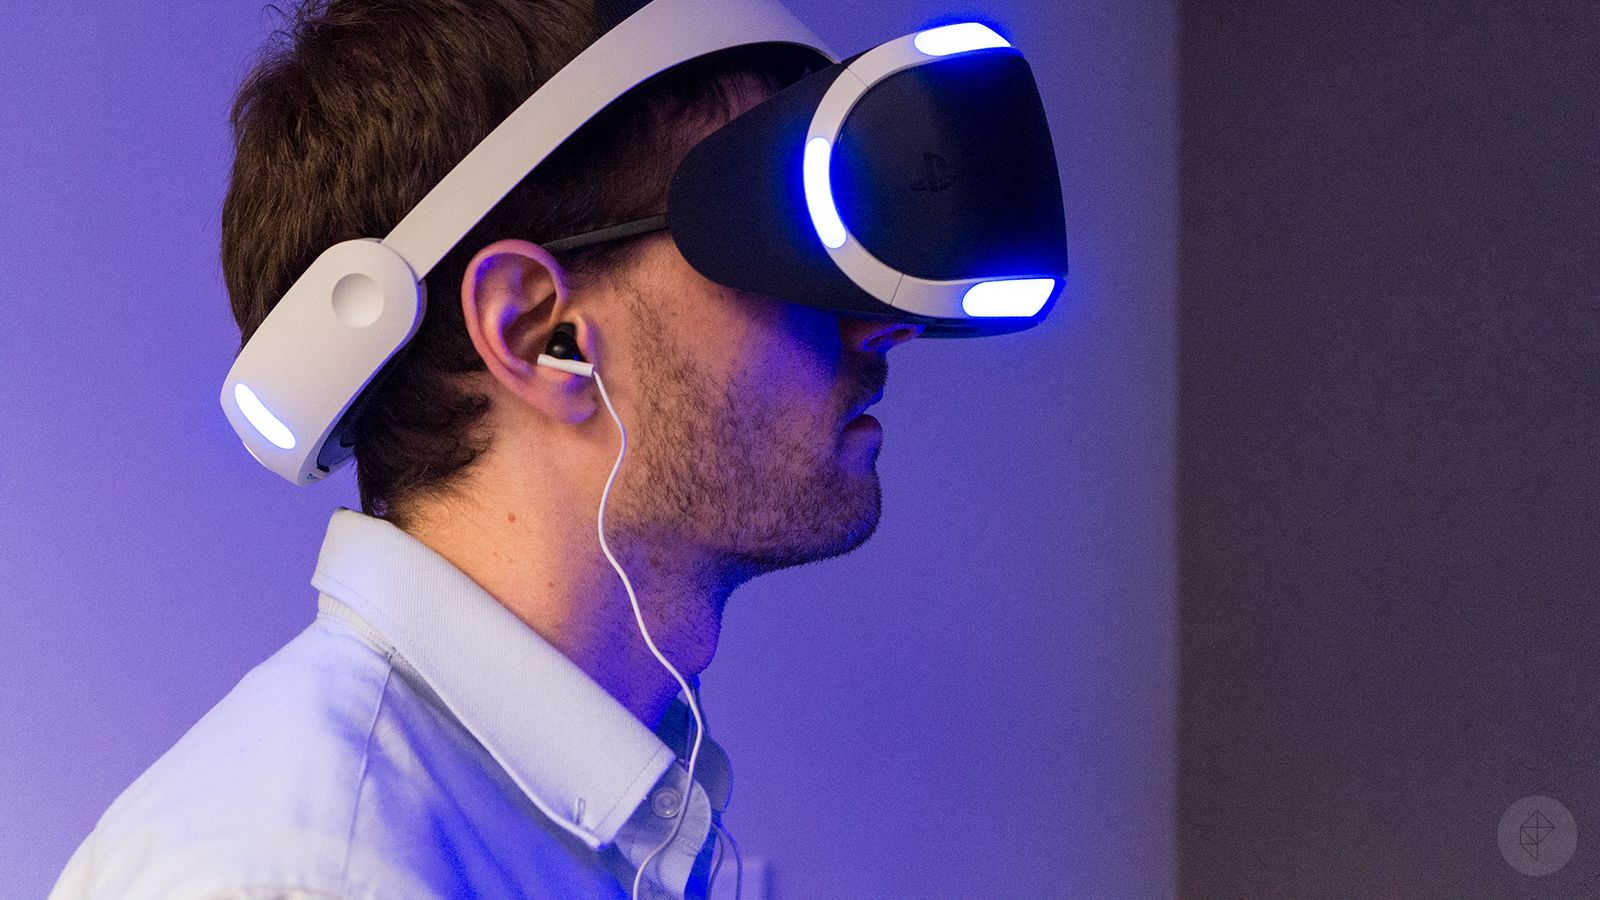 PlayStation VR's 3D audio only works with wired stereo